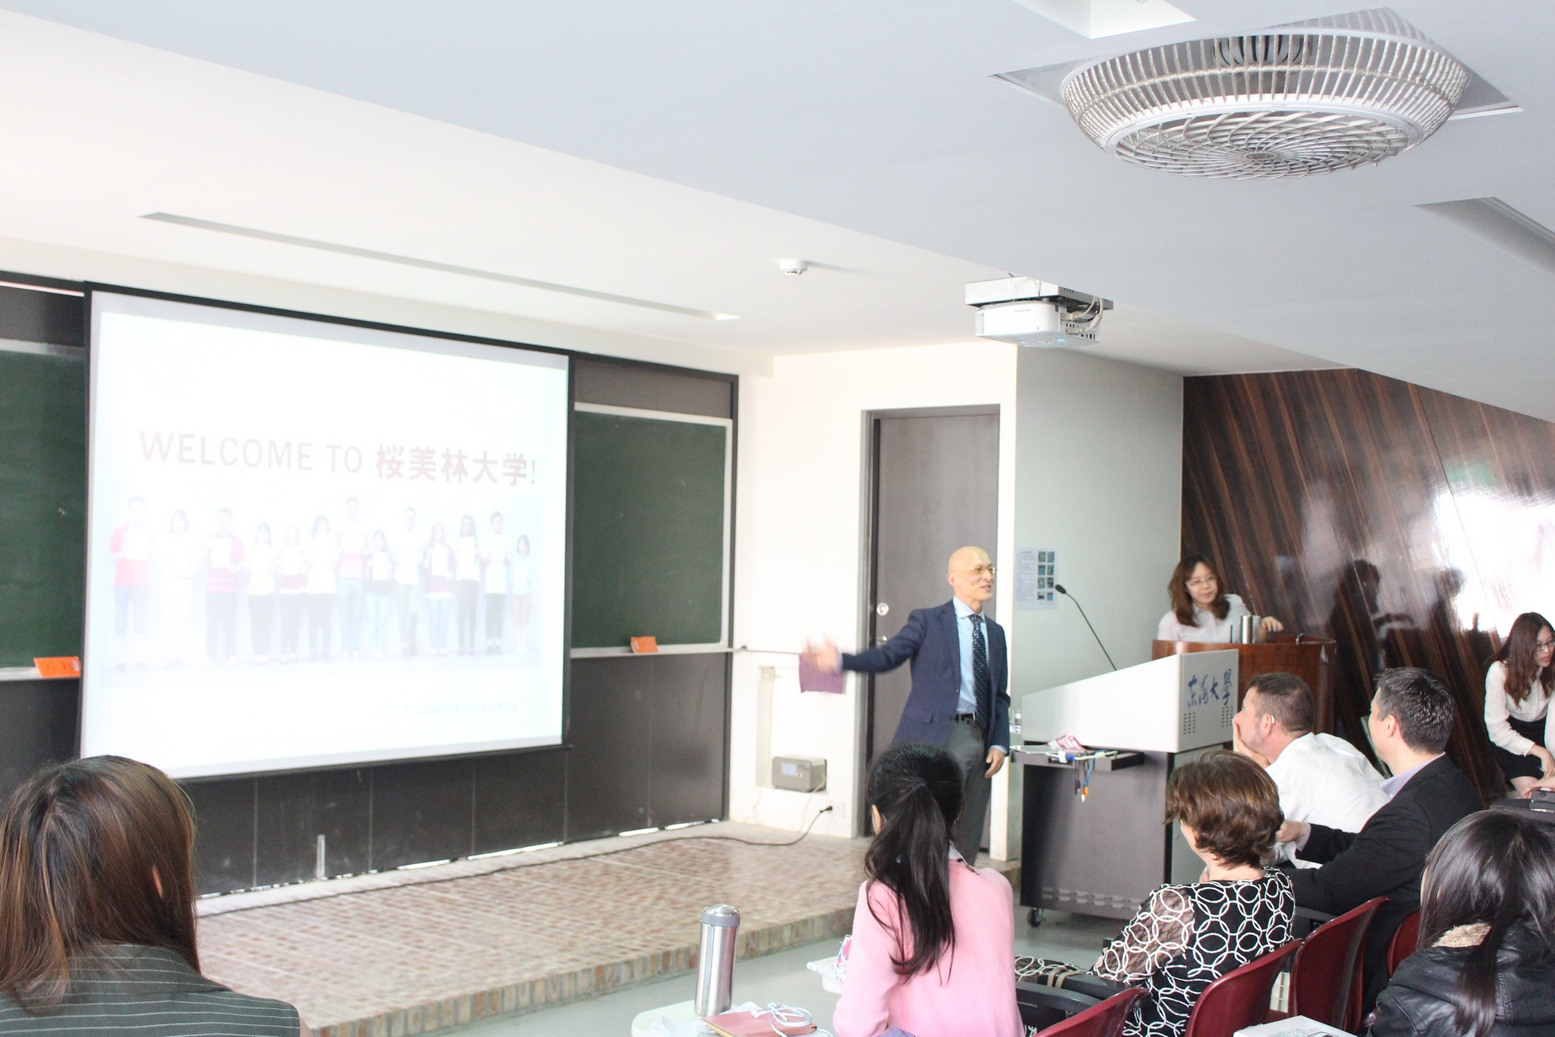 The program started off with a meeting hosted by Dean Hong-Wei Yen of the Office of International Education and Programs, introducing the current status and development of Tunghai's international education.